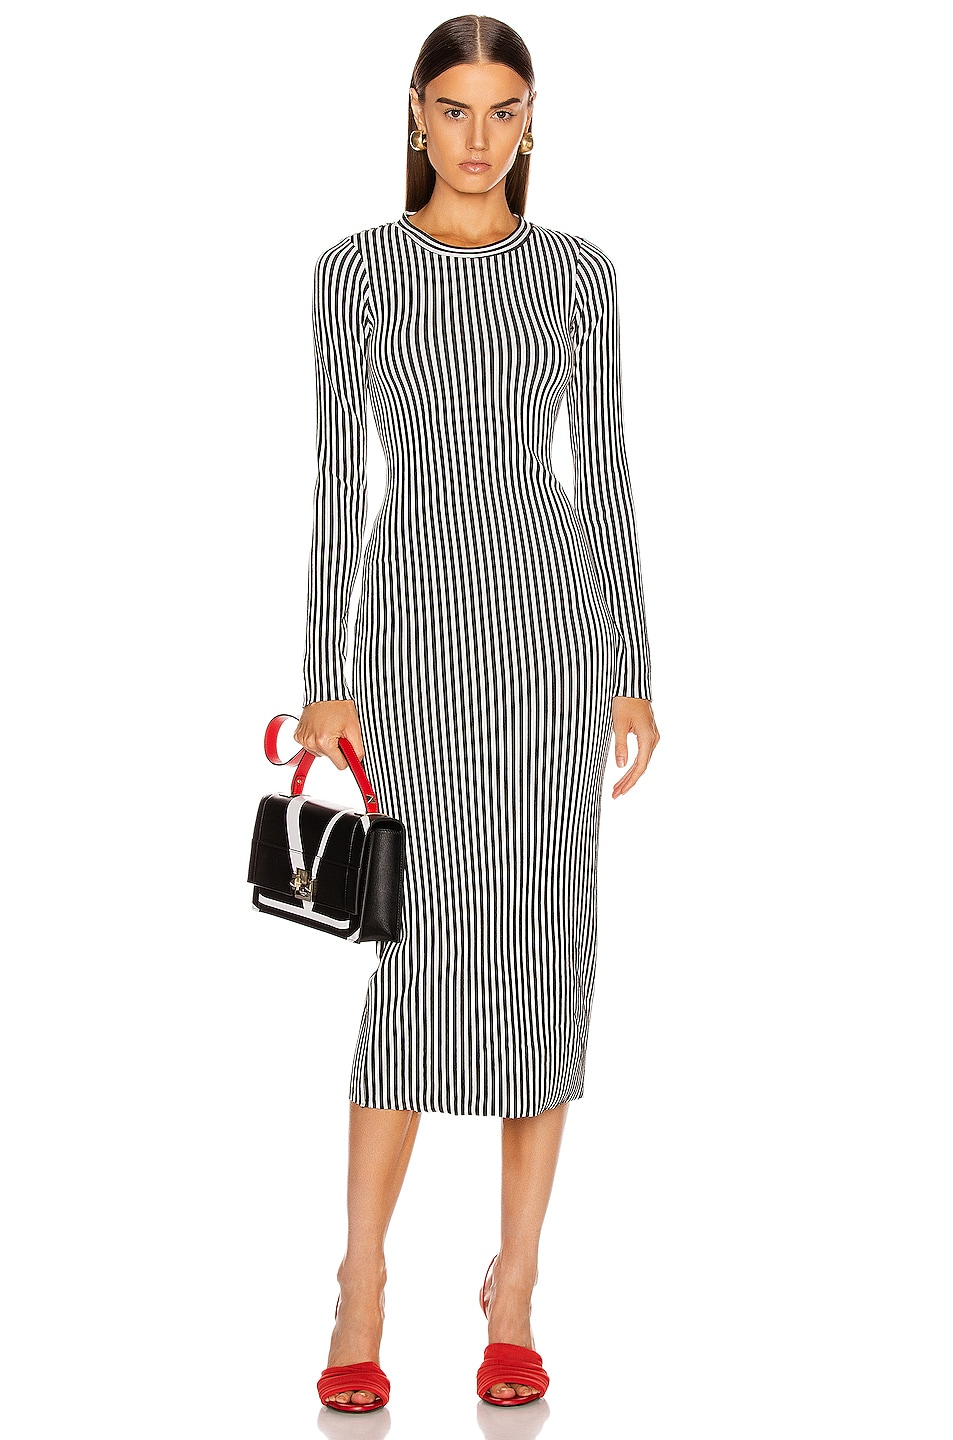 Image 1 of The Range Bound Striped Midi Dress in Black & White